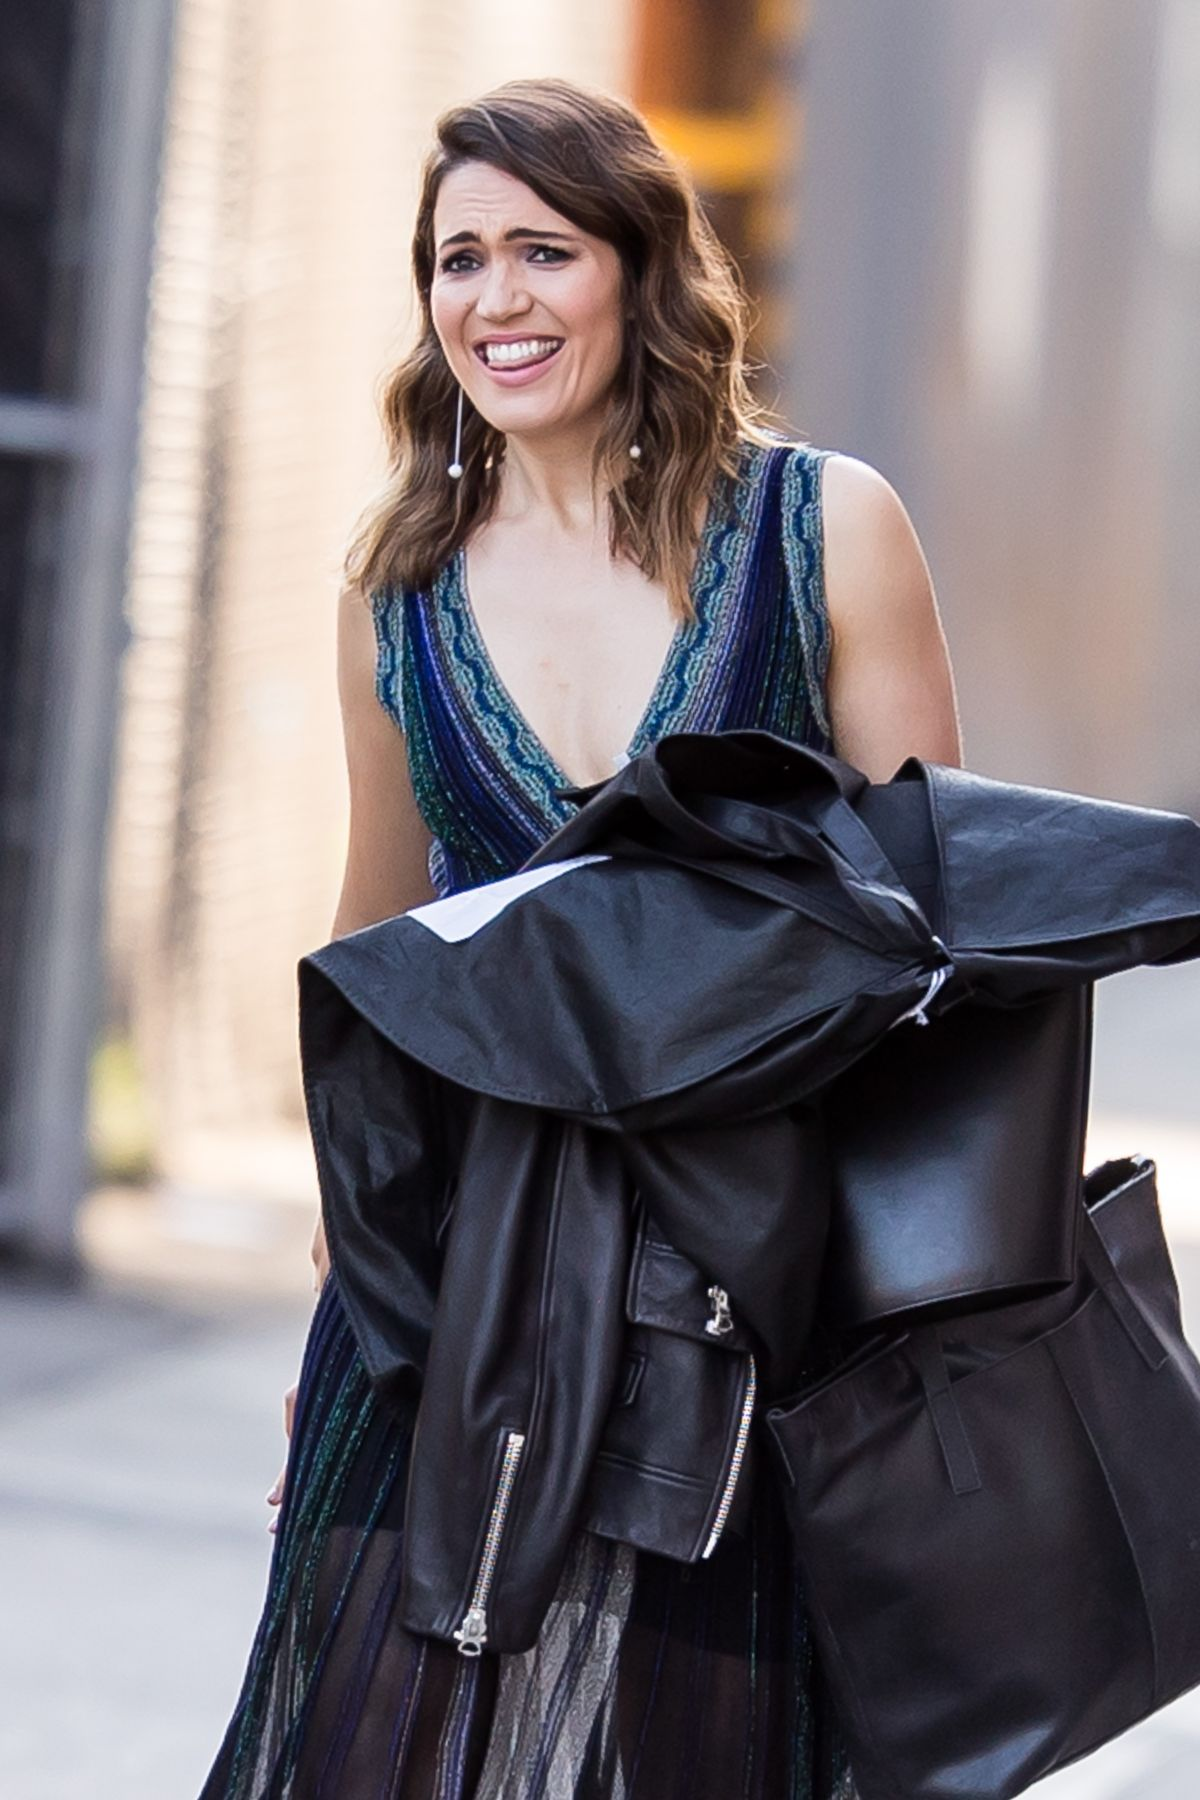 Mandy Moore At 'Jimmy Kimmel Live' in Hollywood   mandy-moore-at-jimmy-kimmel-live-in-hollywood-_6